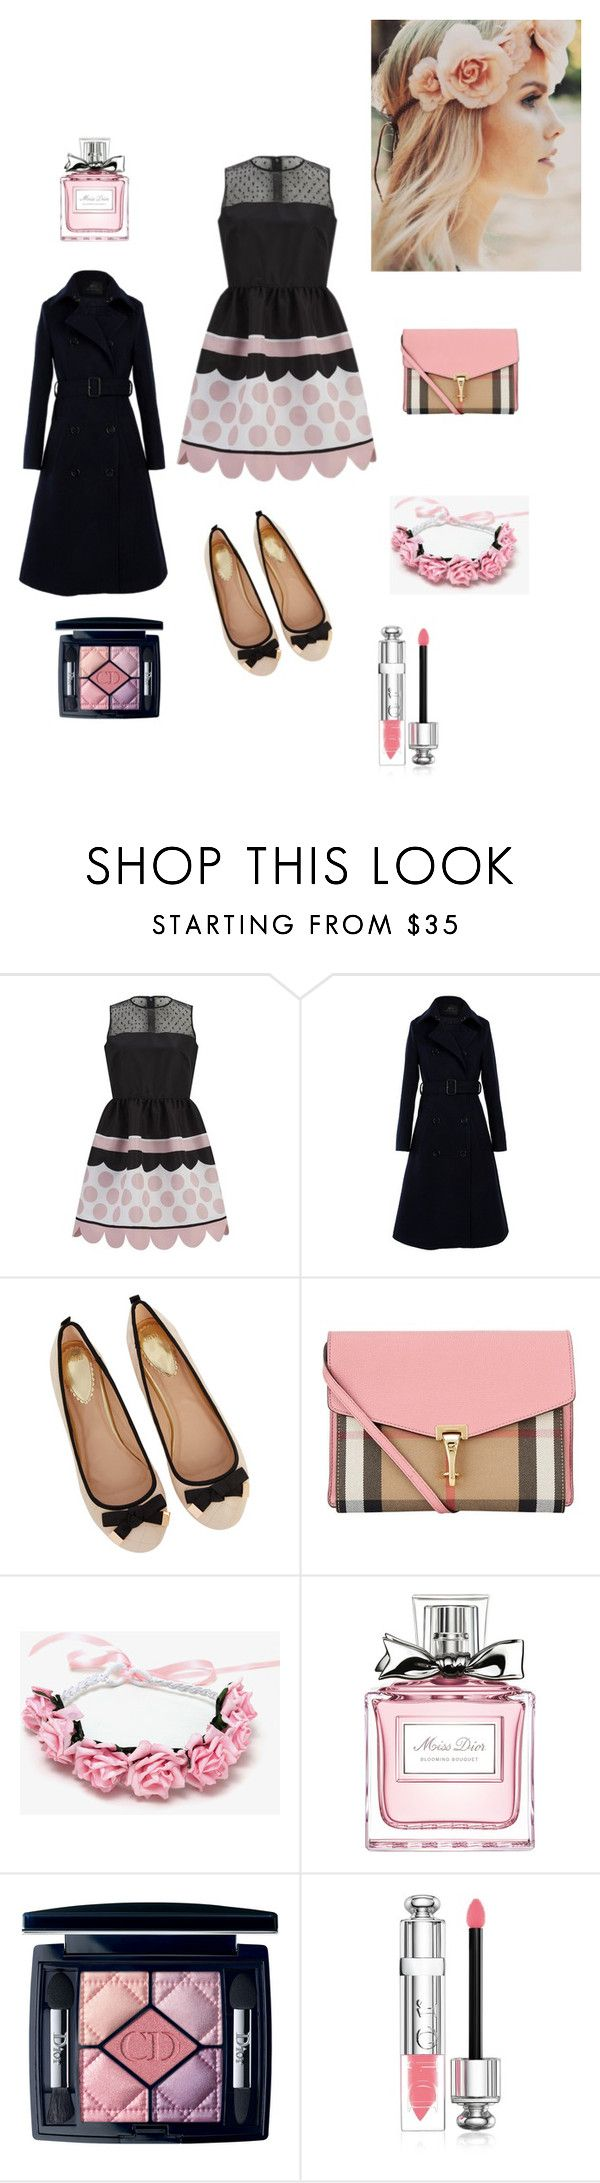 """Zierlicher Stil"" by taniaazzini on Polyvore featuring moda, RED Valentino, Oasis, Burberry e Christian Dior"